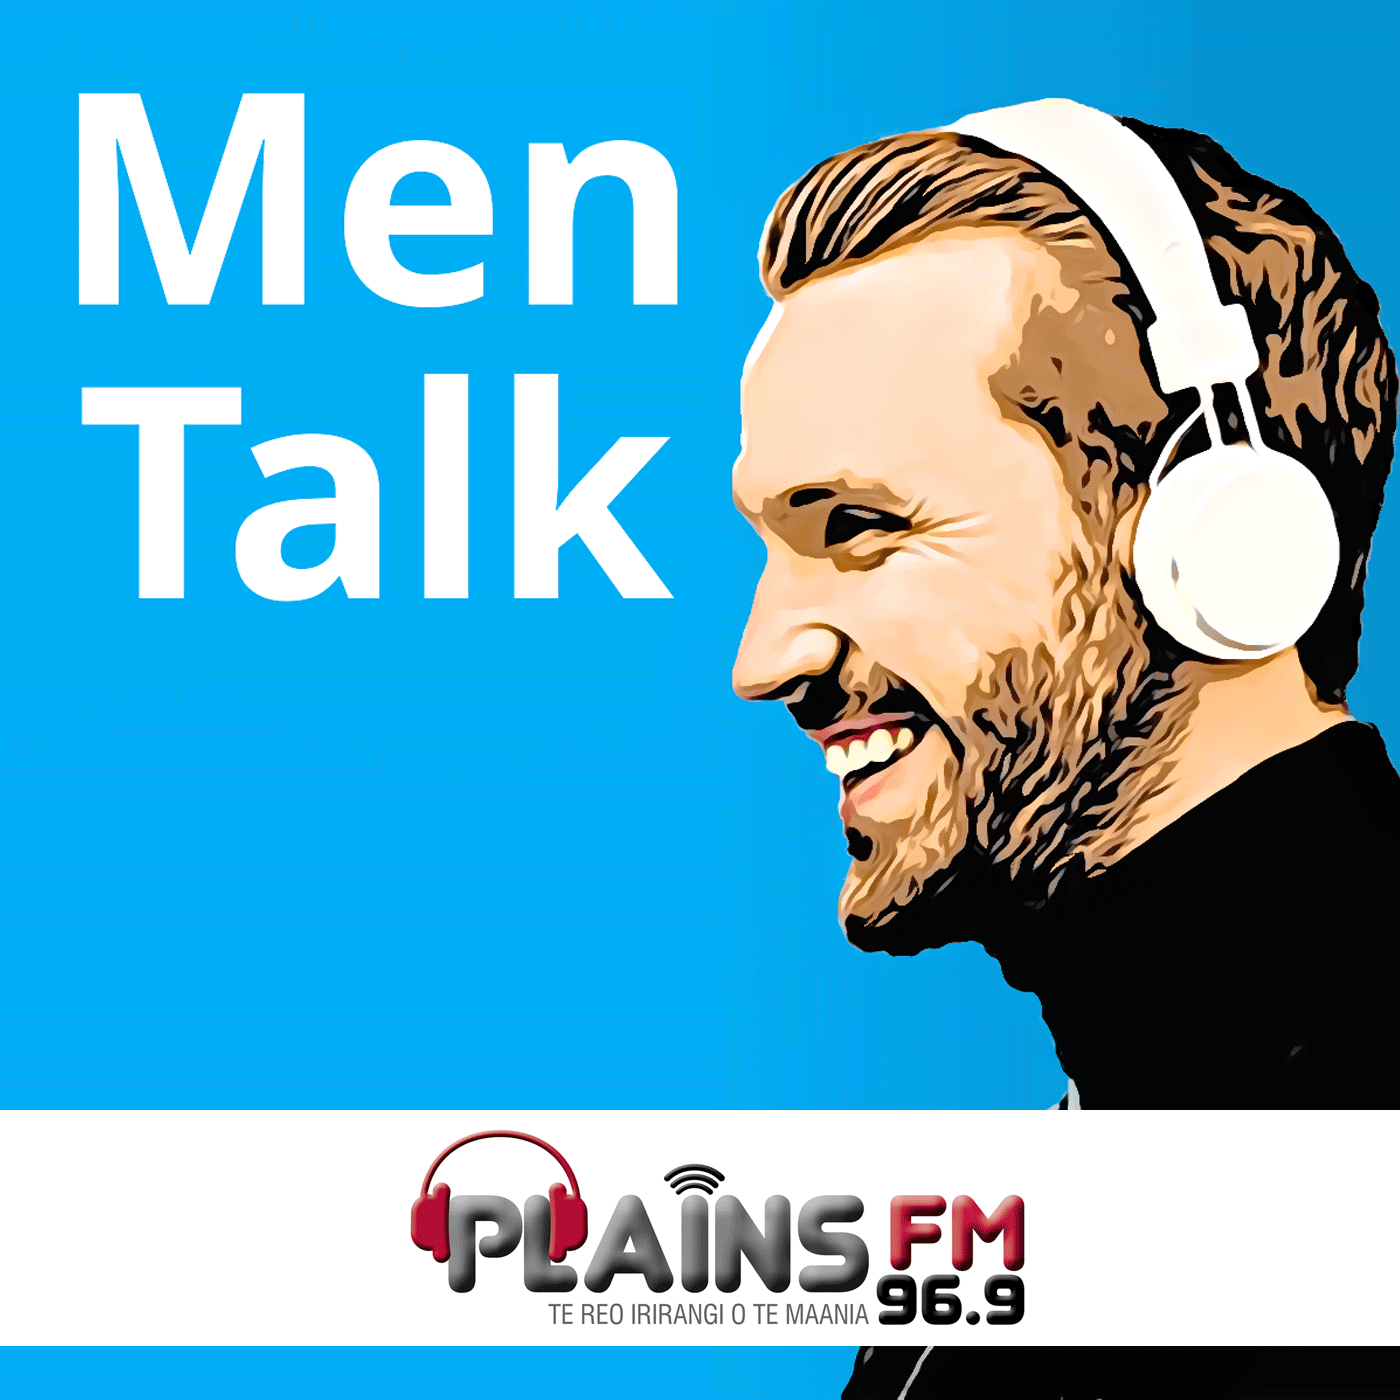 Men Talk - About Movember